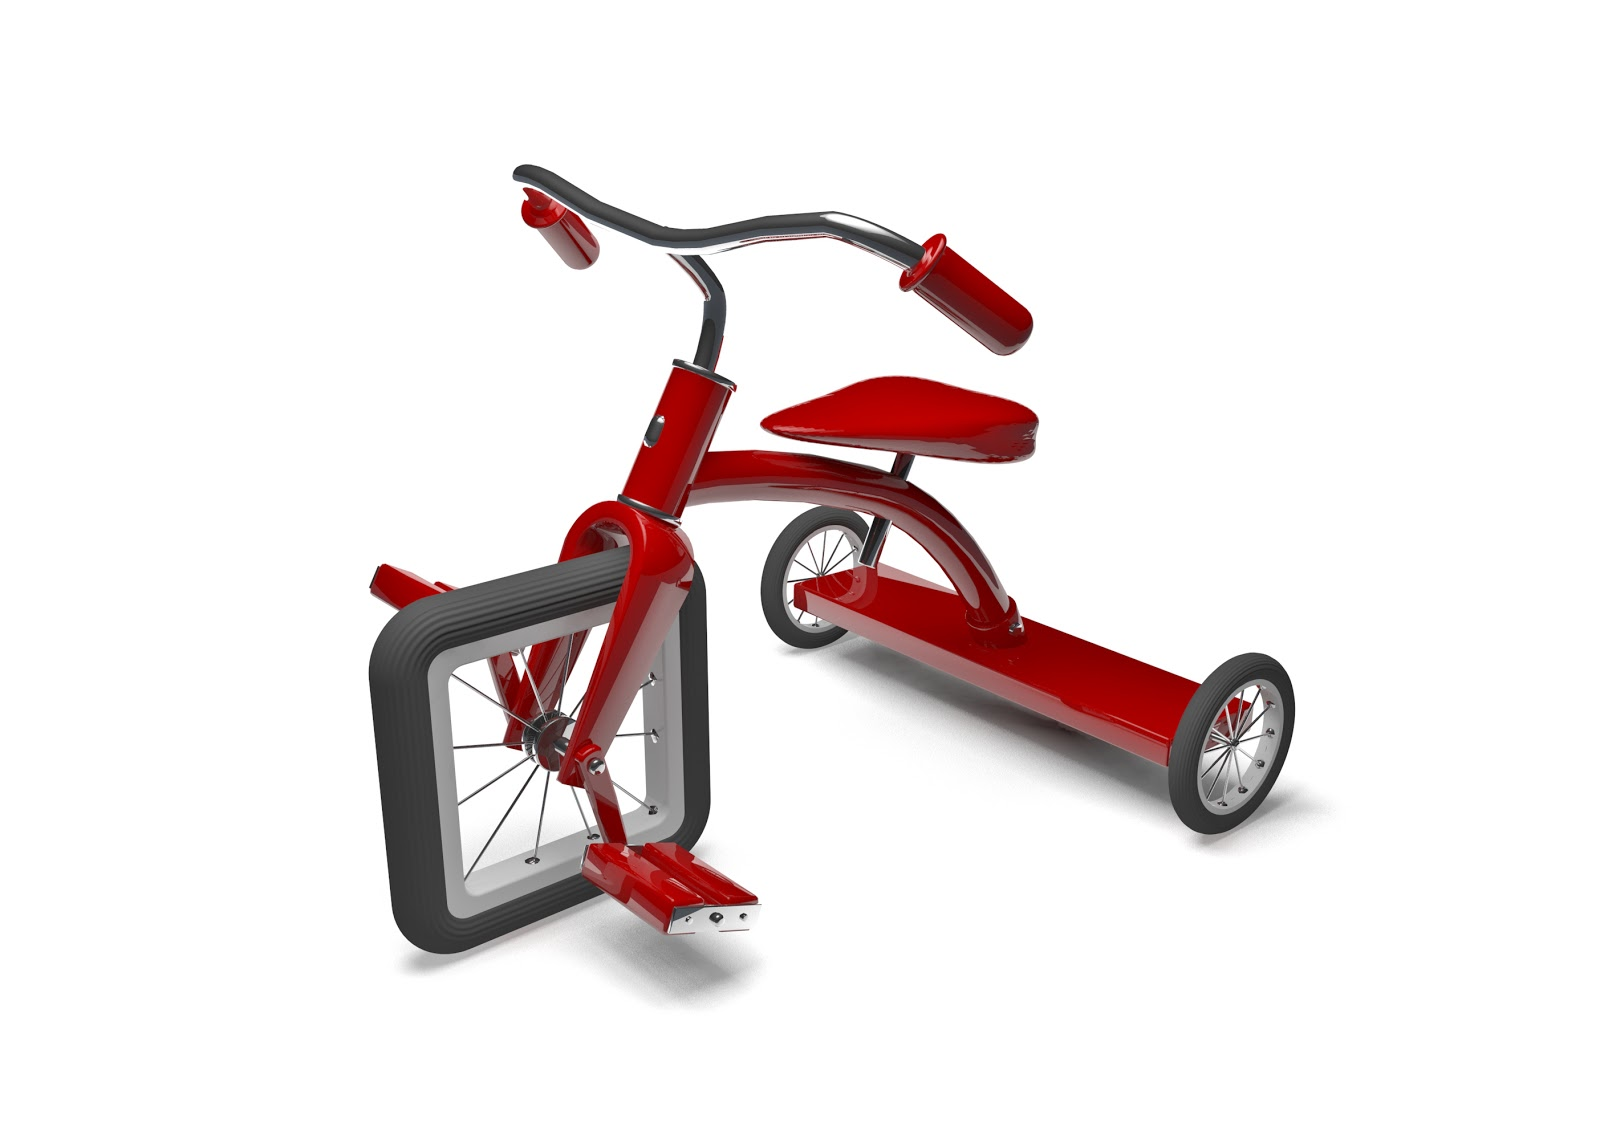 Red tricycle with a square front wheel, illustrating a perfect employee has drawbacks or flaws too